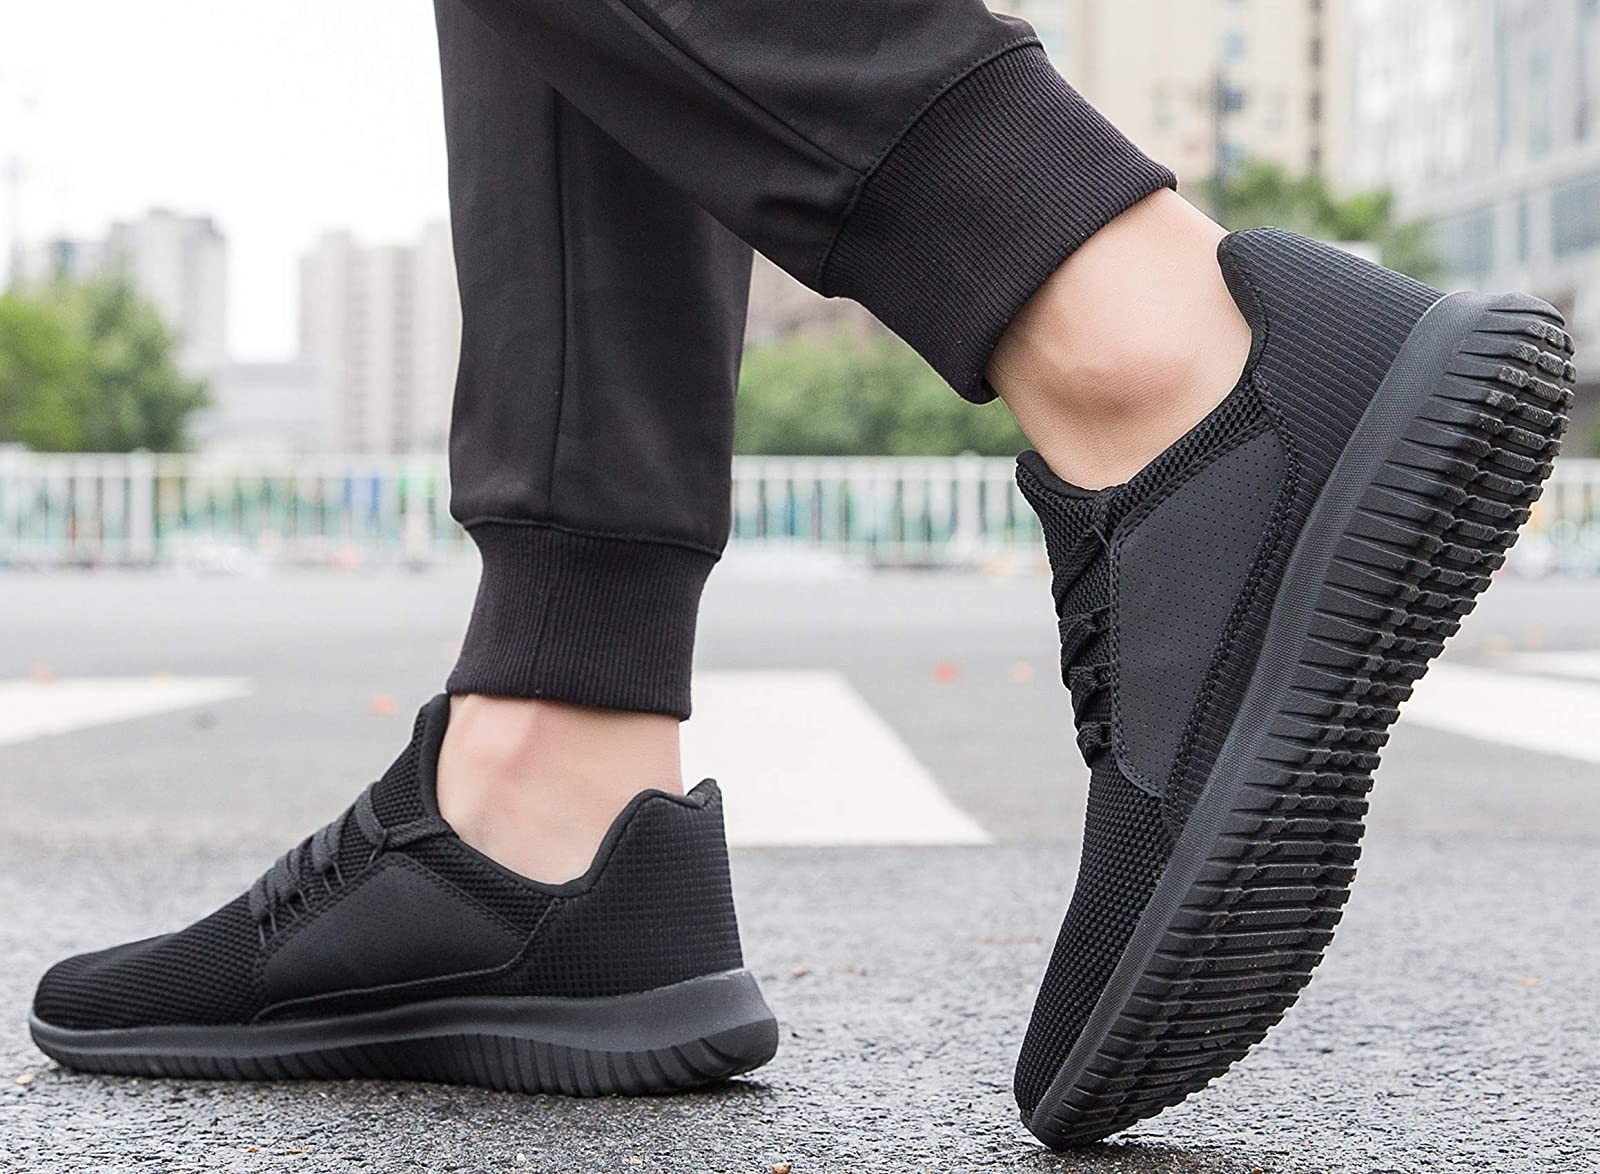 Krystory Casual Running SneakersMen and Women Breathable - 6